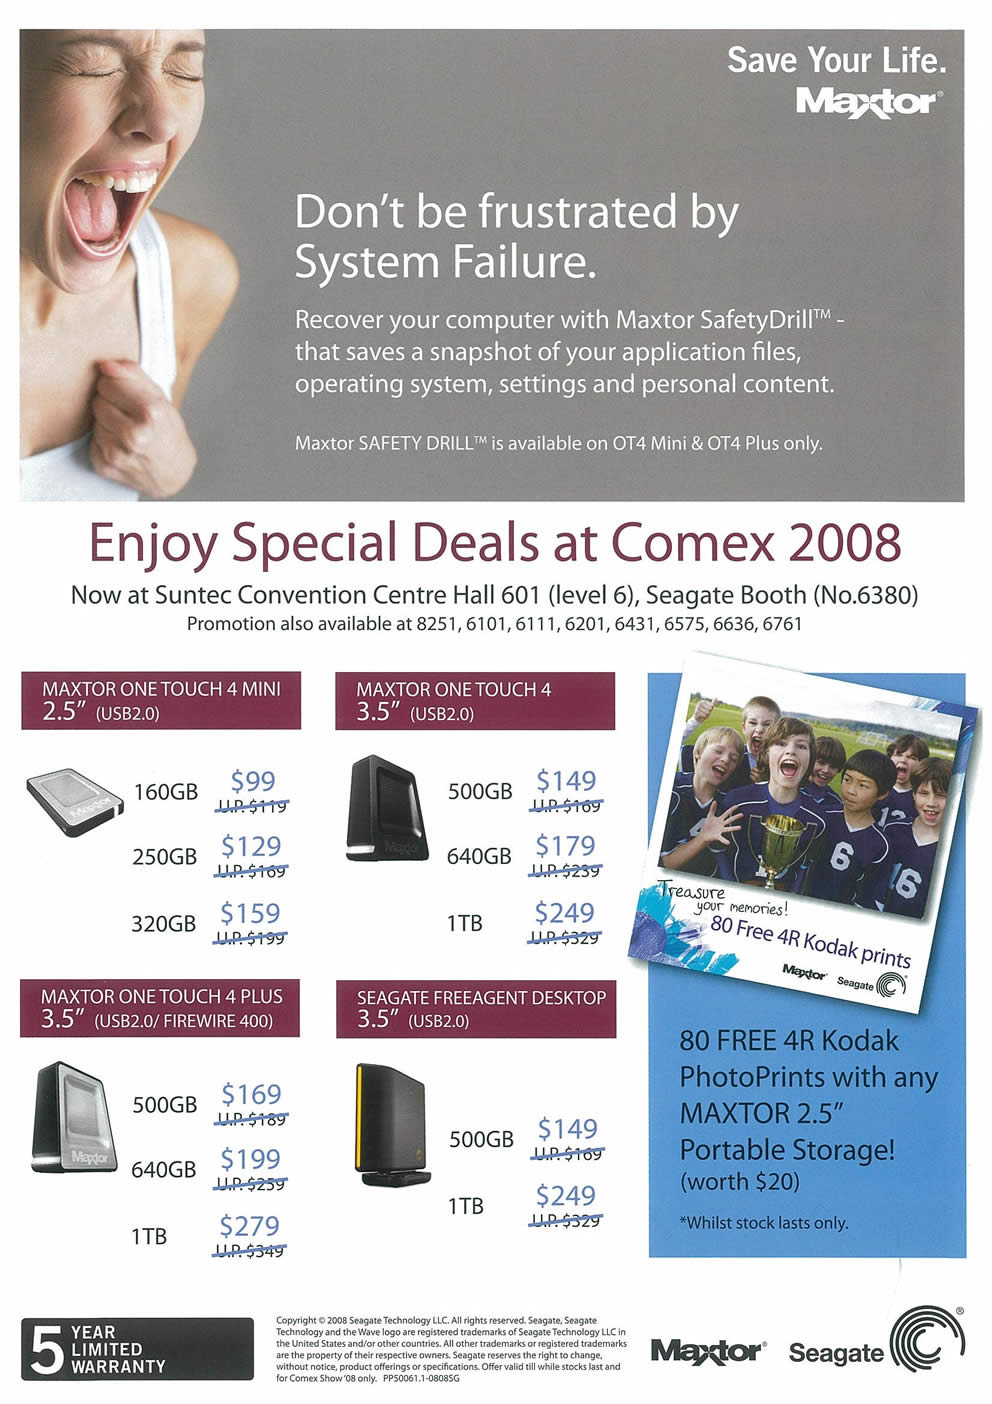 Comex 2008 price list image brochure of Maxtor Page 2